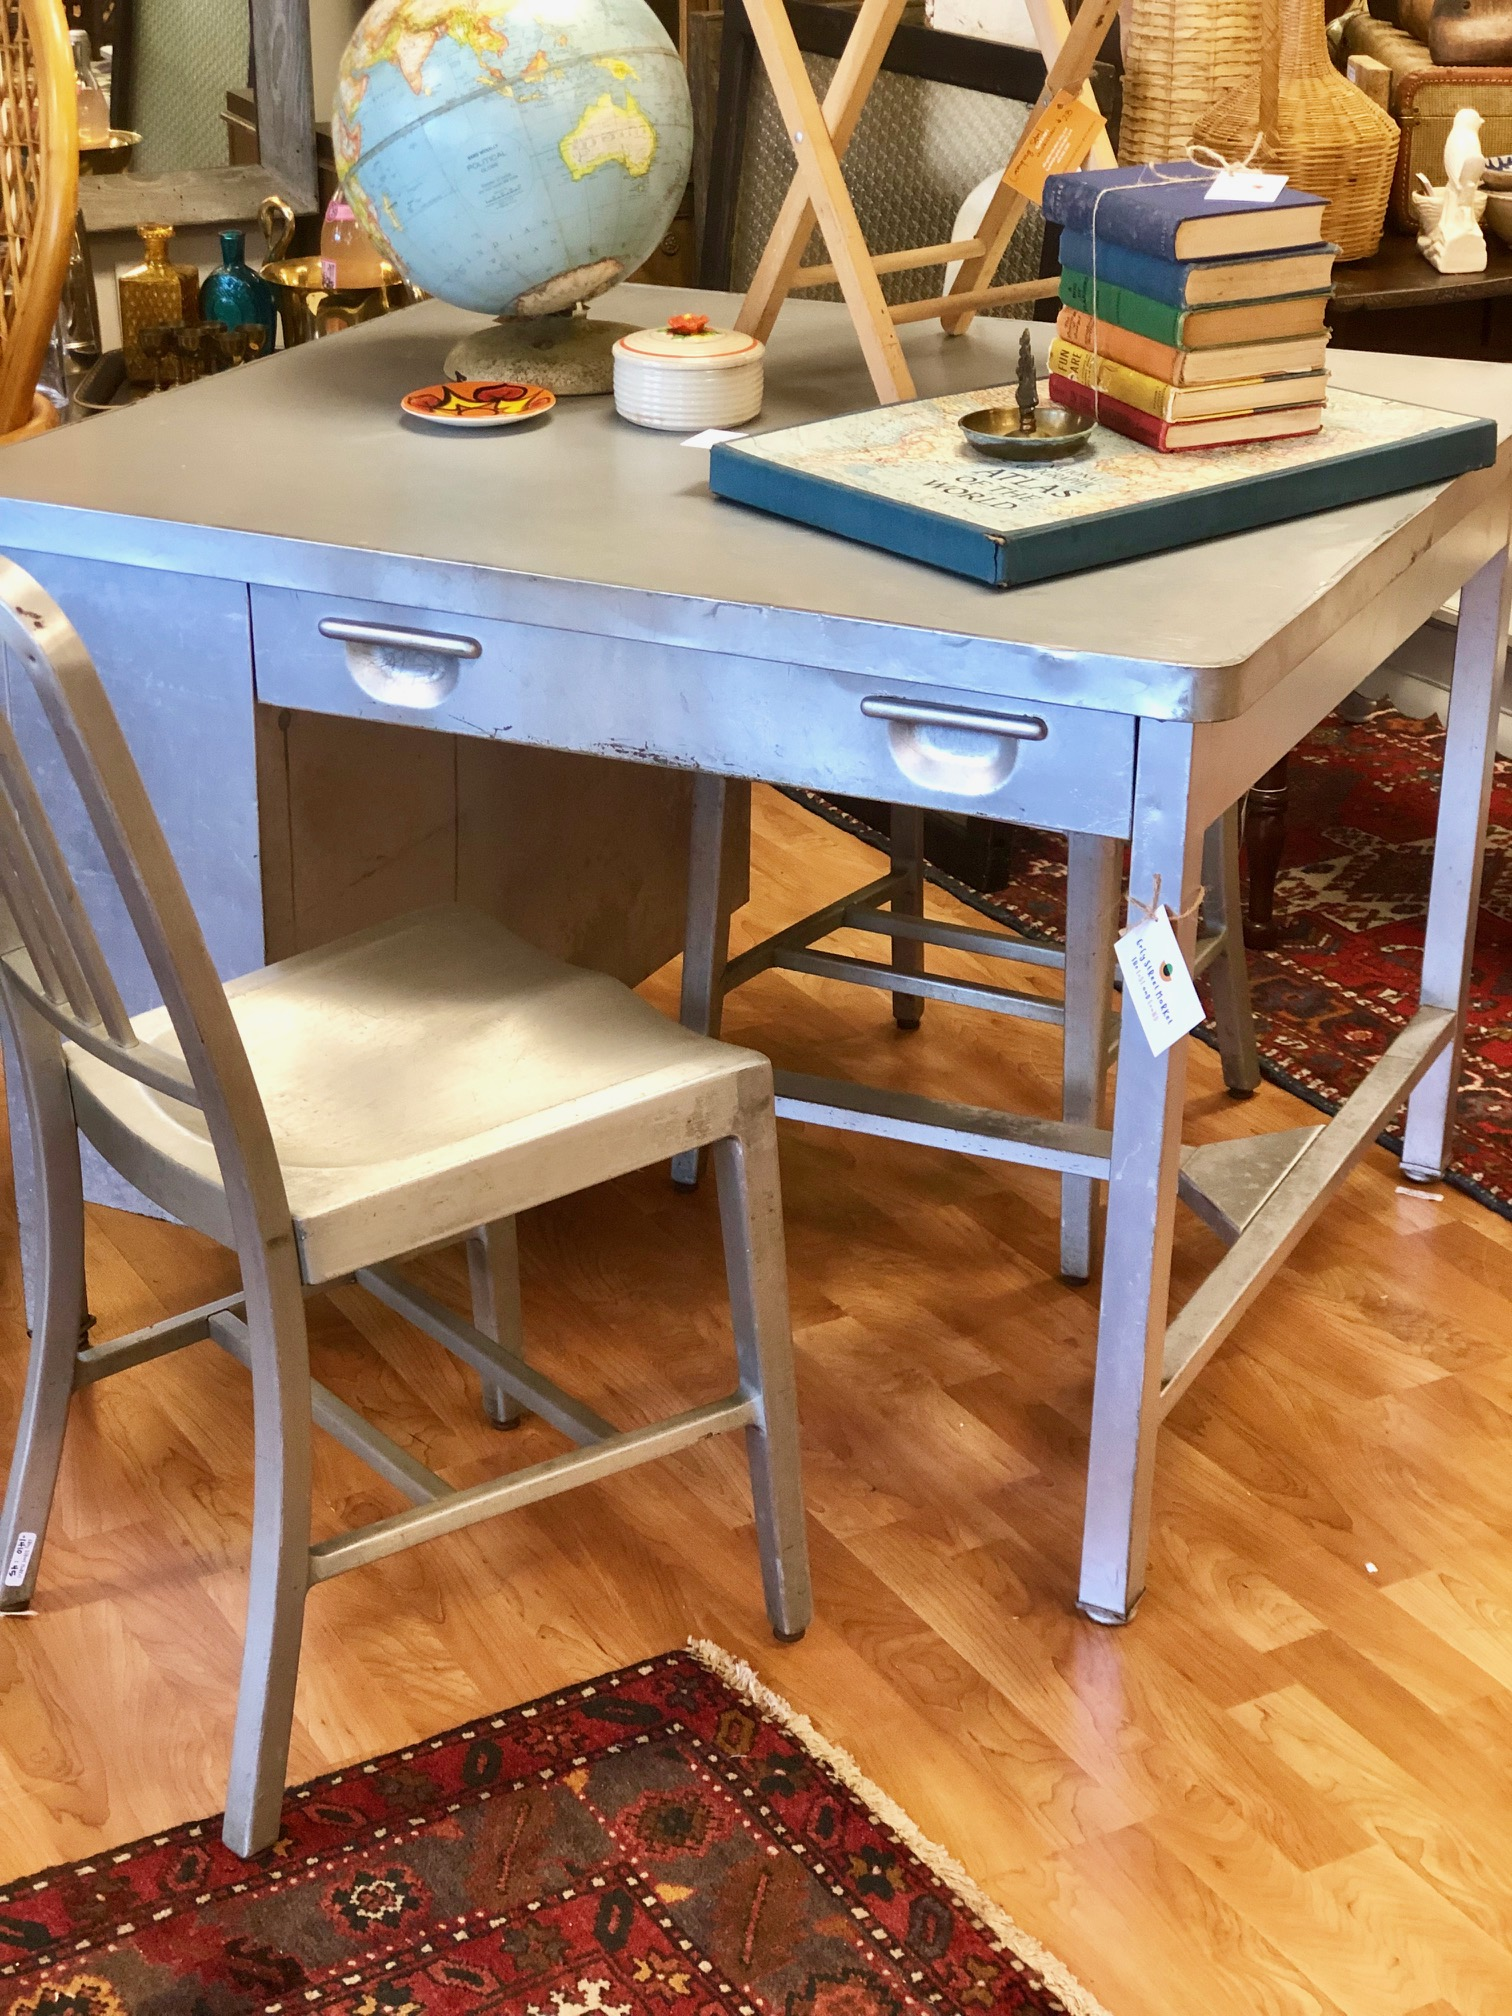 Double duty: a chair can pull up on each side of this industrial style desk.  $285  Grey Street Market